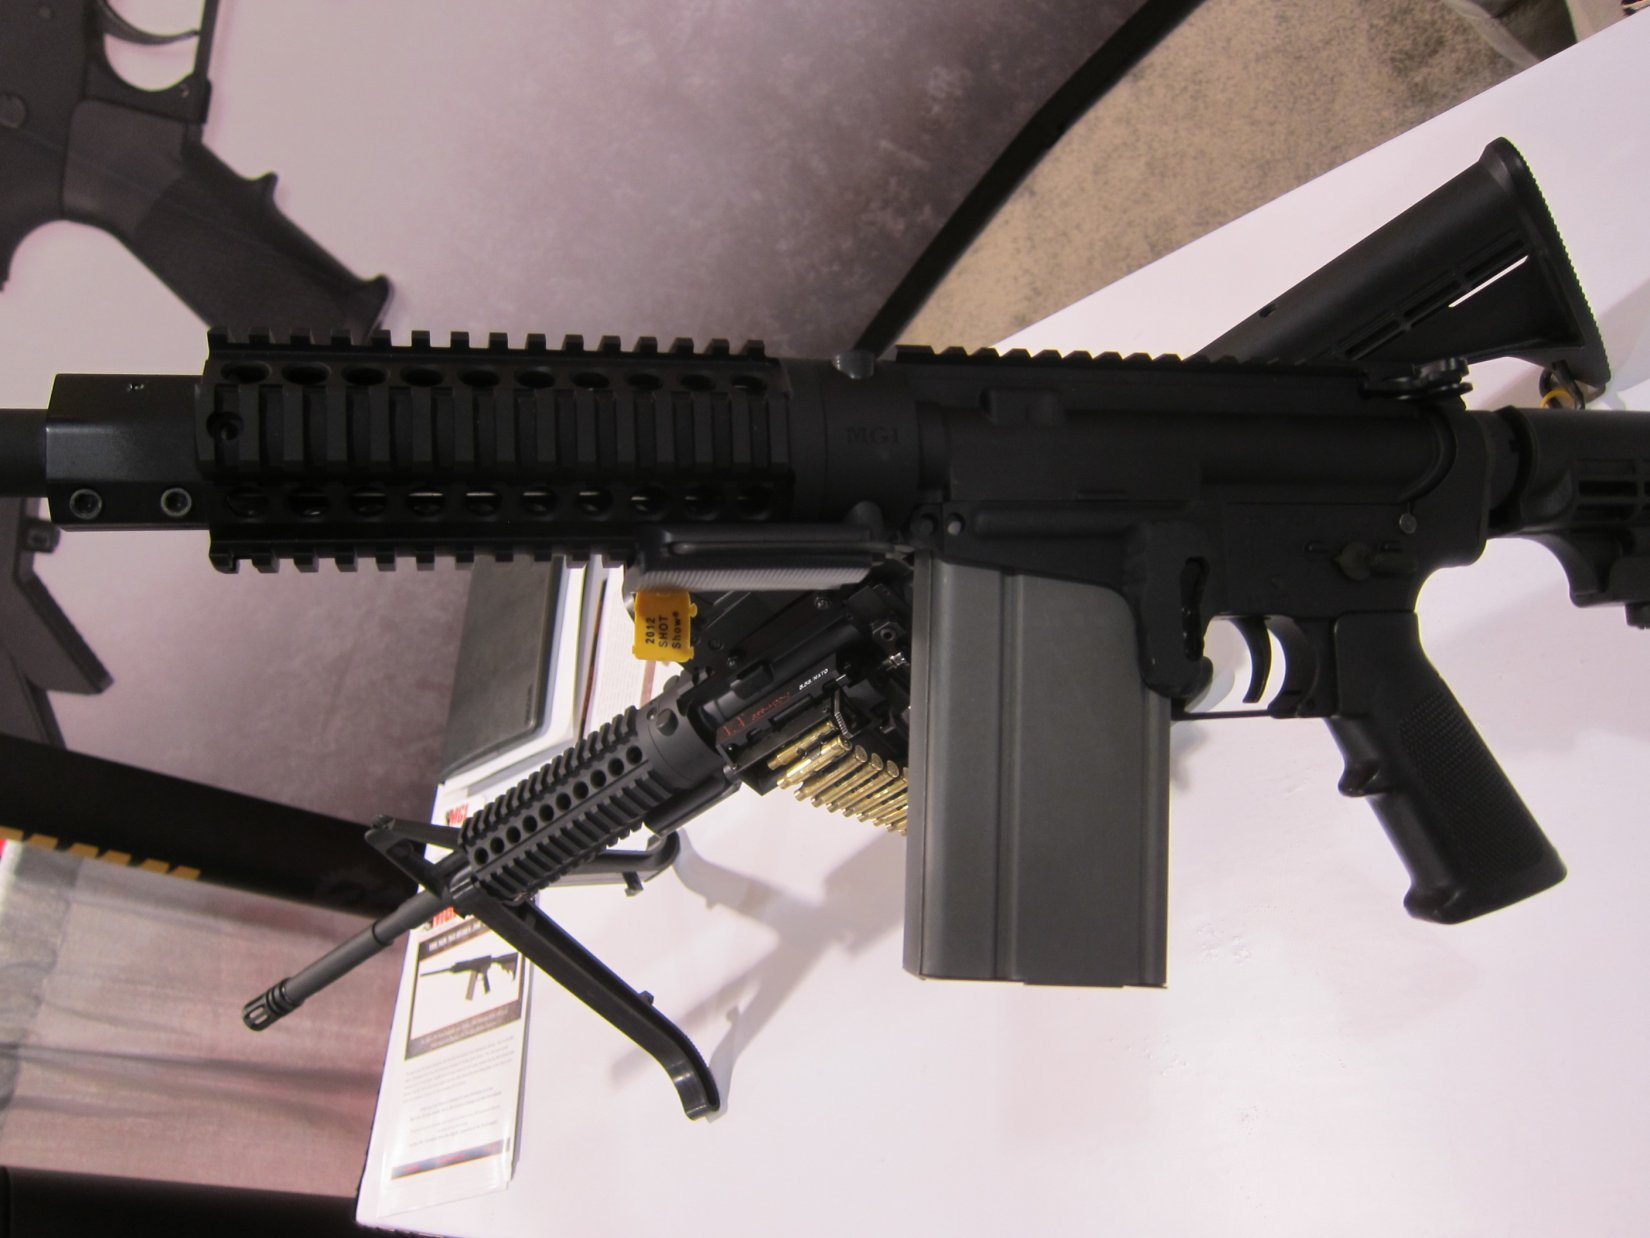 MGI Hydra AR 7.62mm Magazine SHOT Show 2012 DefenseReview.com DR 2 MGI Hydra Modular 7.62mm NATO/.308 Win. Tactical AR (AR 15) Rifle/Carbine/SBR (Short Barreled Rifle) Conversion Kit Prototype with Modular Lower Receiver, 7.62mm Magwell and Modified M14 Mag (Photos and Video!)